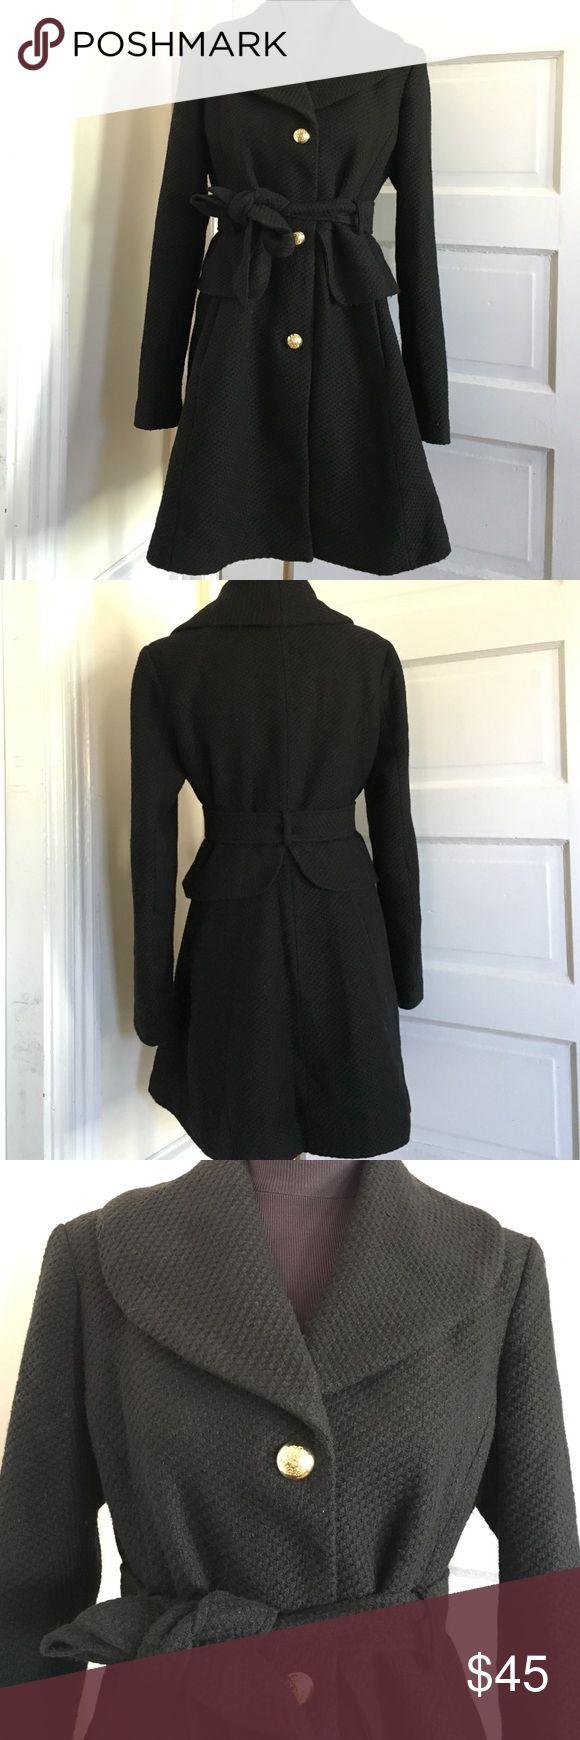 Jessica Simpson coat size Large EUC Jessica Simpson winter coat size large. (Best to fit a 10/12) Super cute and warm coat, nubbly black wool blend. Only worn a few times. Features gold buttons, (spare button attached to inside tag) pockets and very flattering peplum waist. The fit is a slim fit, and the arms are longer then some coats. Smoke free home. Jessica Simpson Jackets & Coats